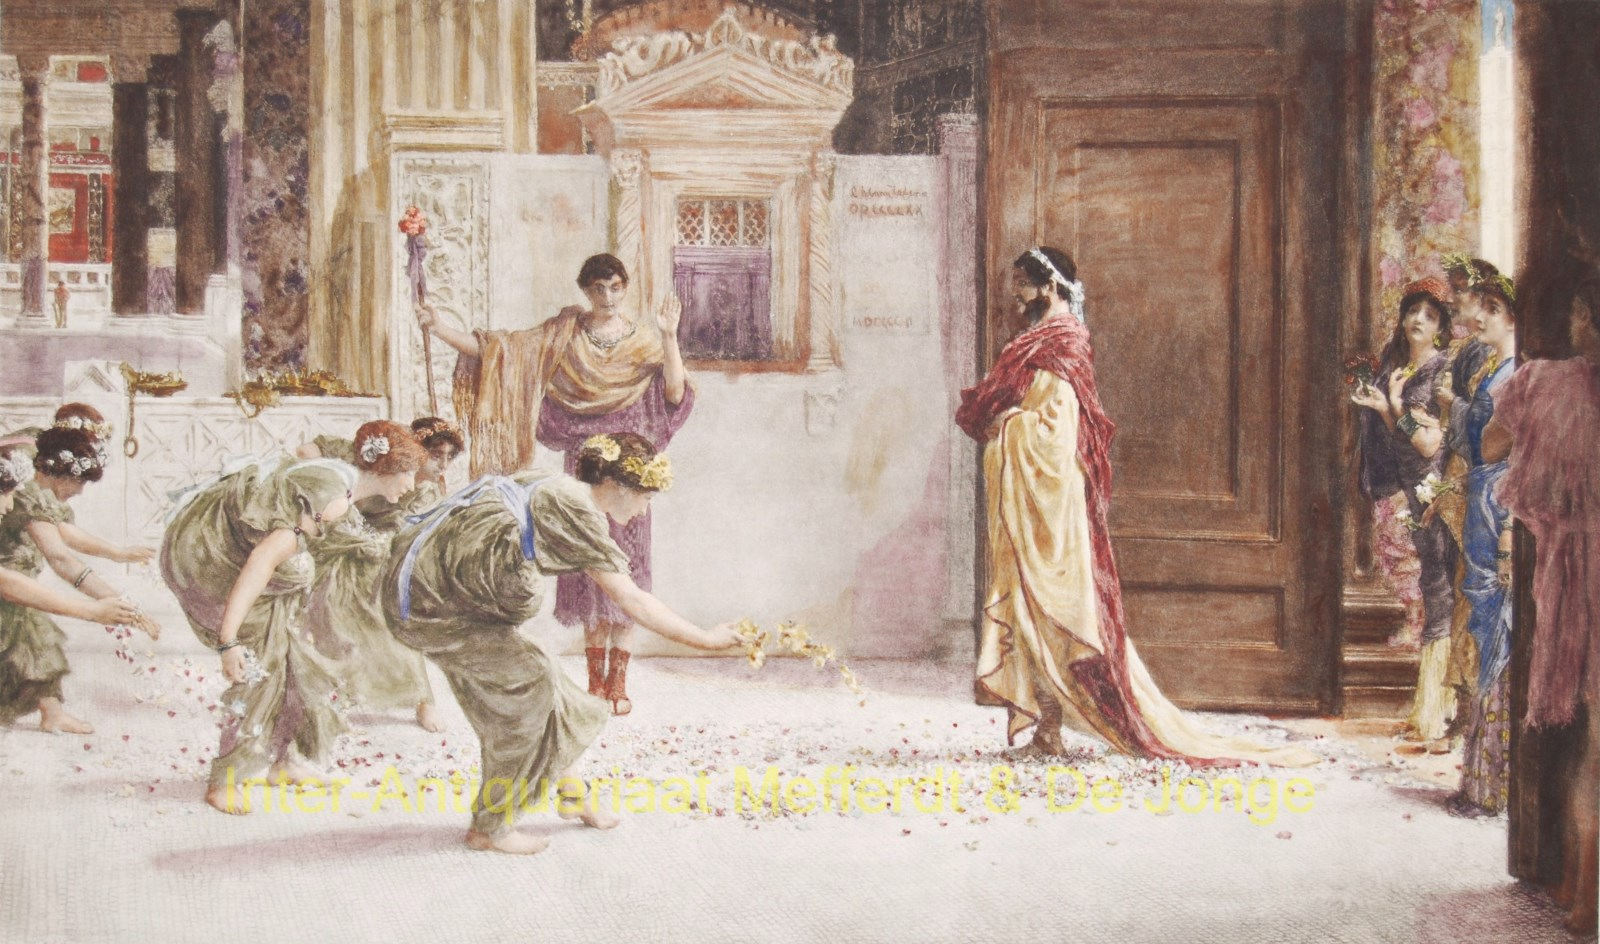 Caracalla AD: 211 - Sir Lawrence Alma-Tadema